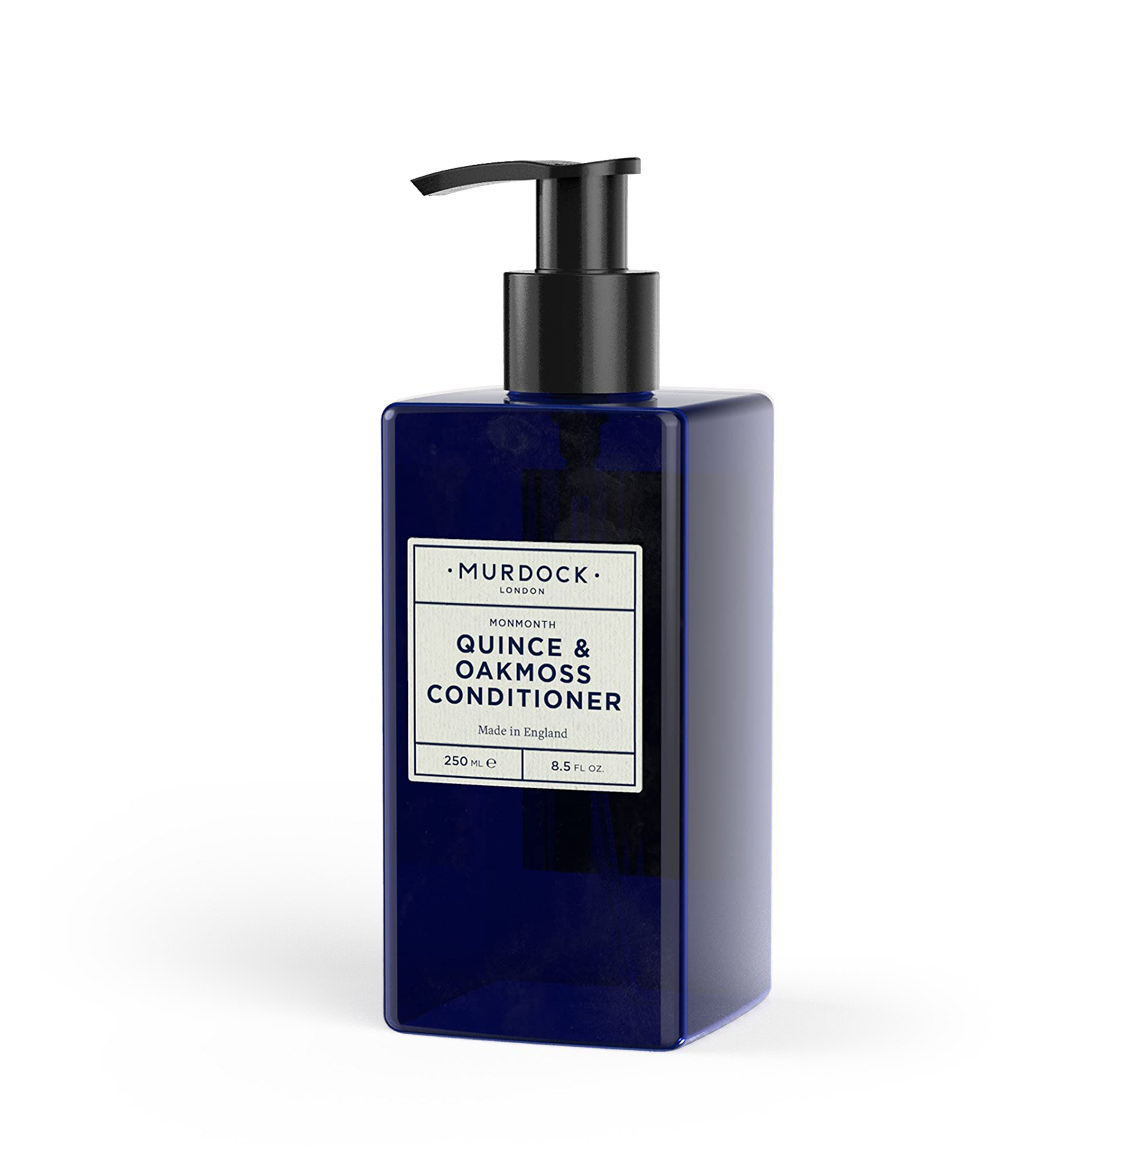 Murdock London Quince and Oakmoss Conditioner 250ml